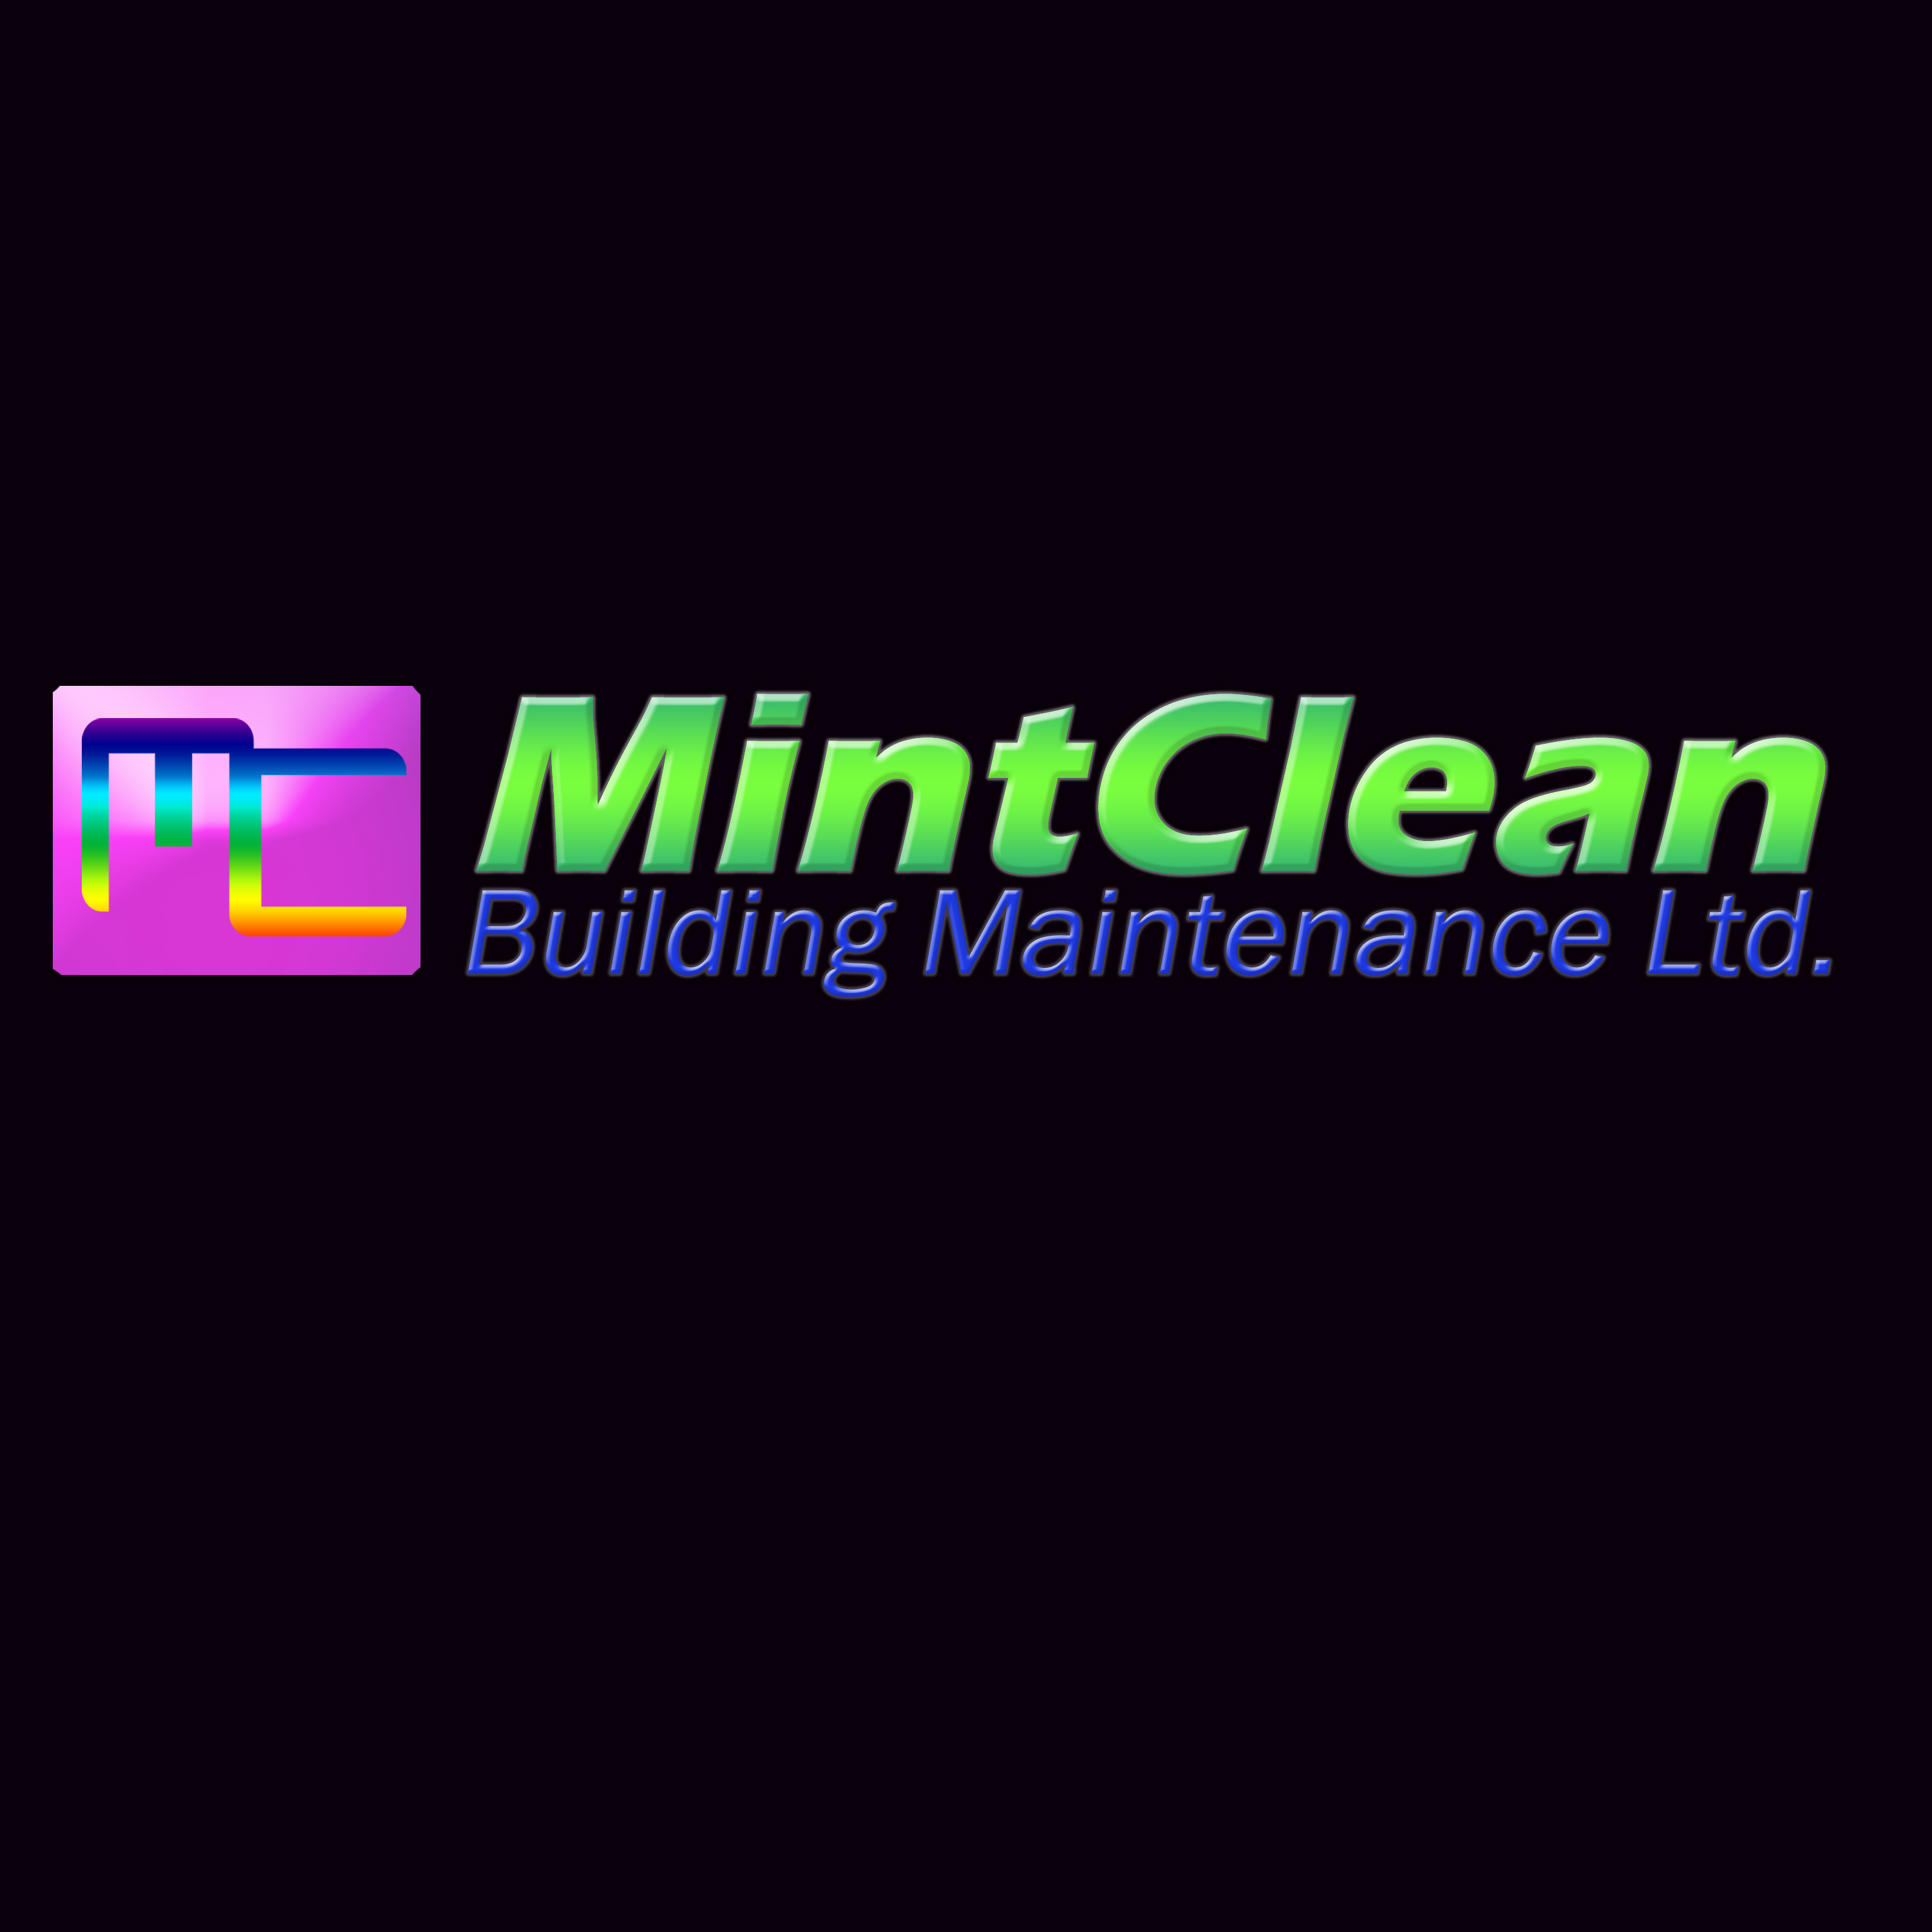 Logo Design by Roberto Sibbaluca - Entry No. 47 in the Logo Design Contest MintClean Building Maintenance Ltd. Logo Design.